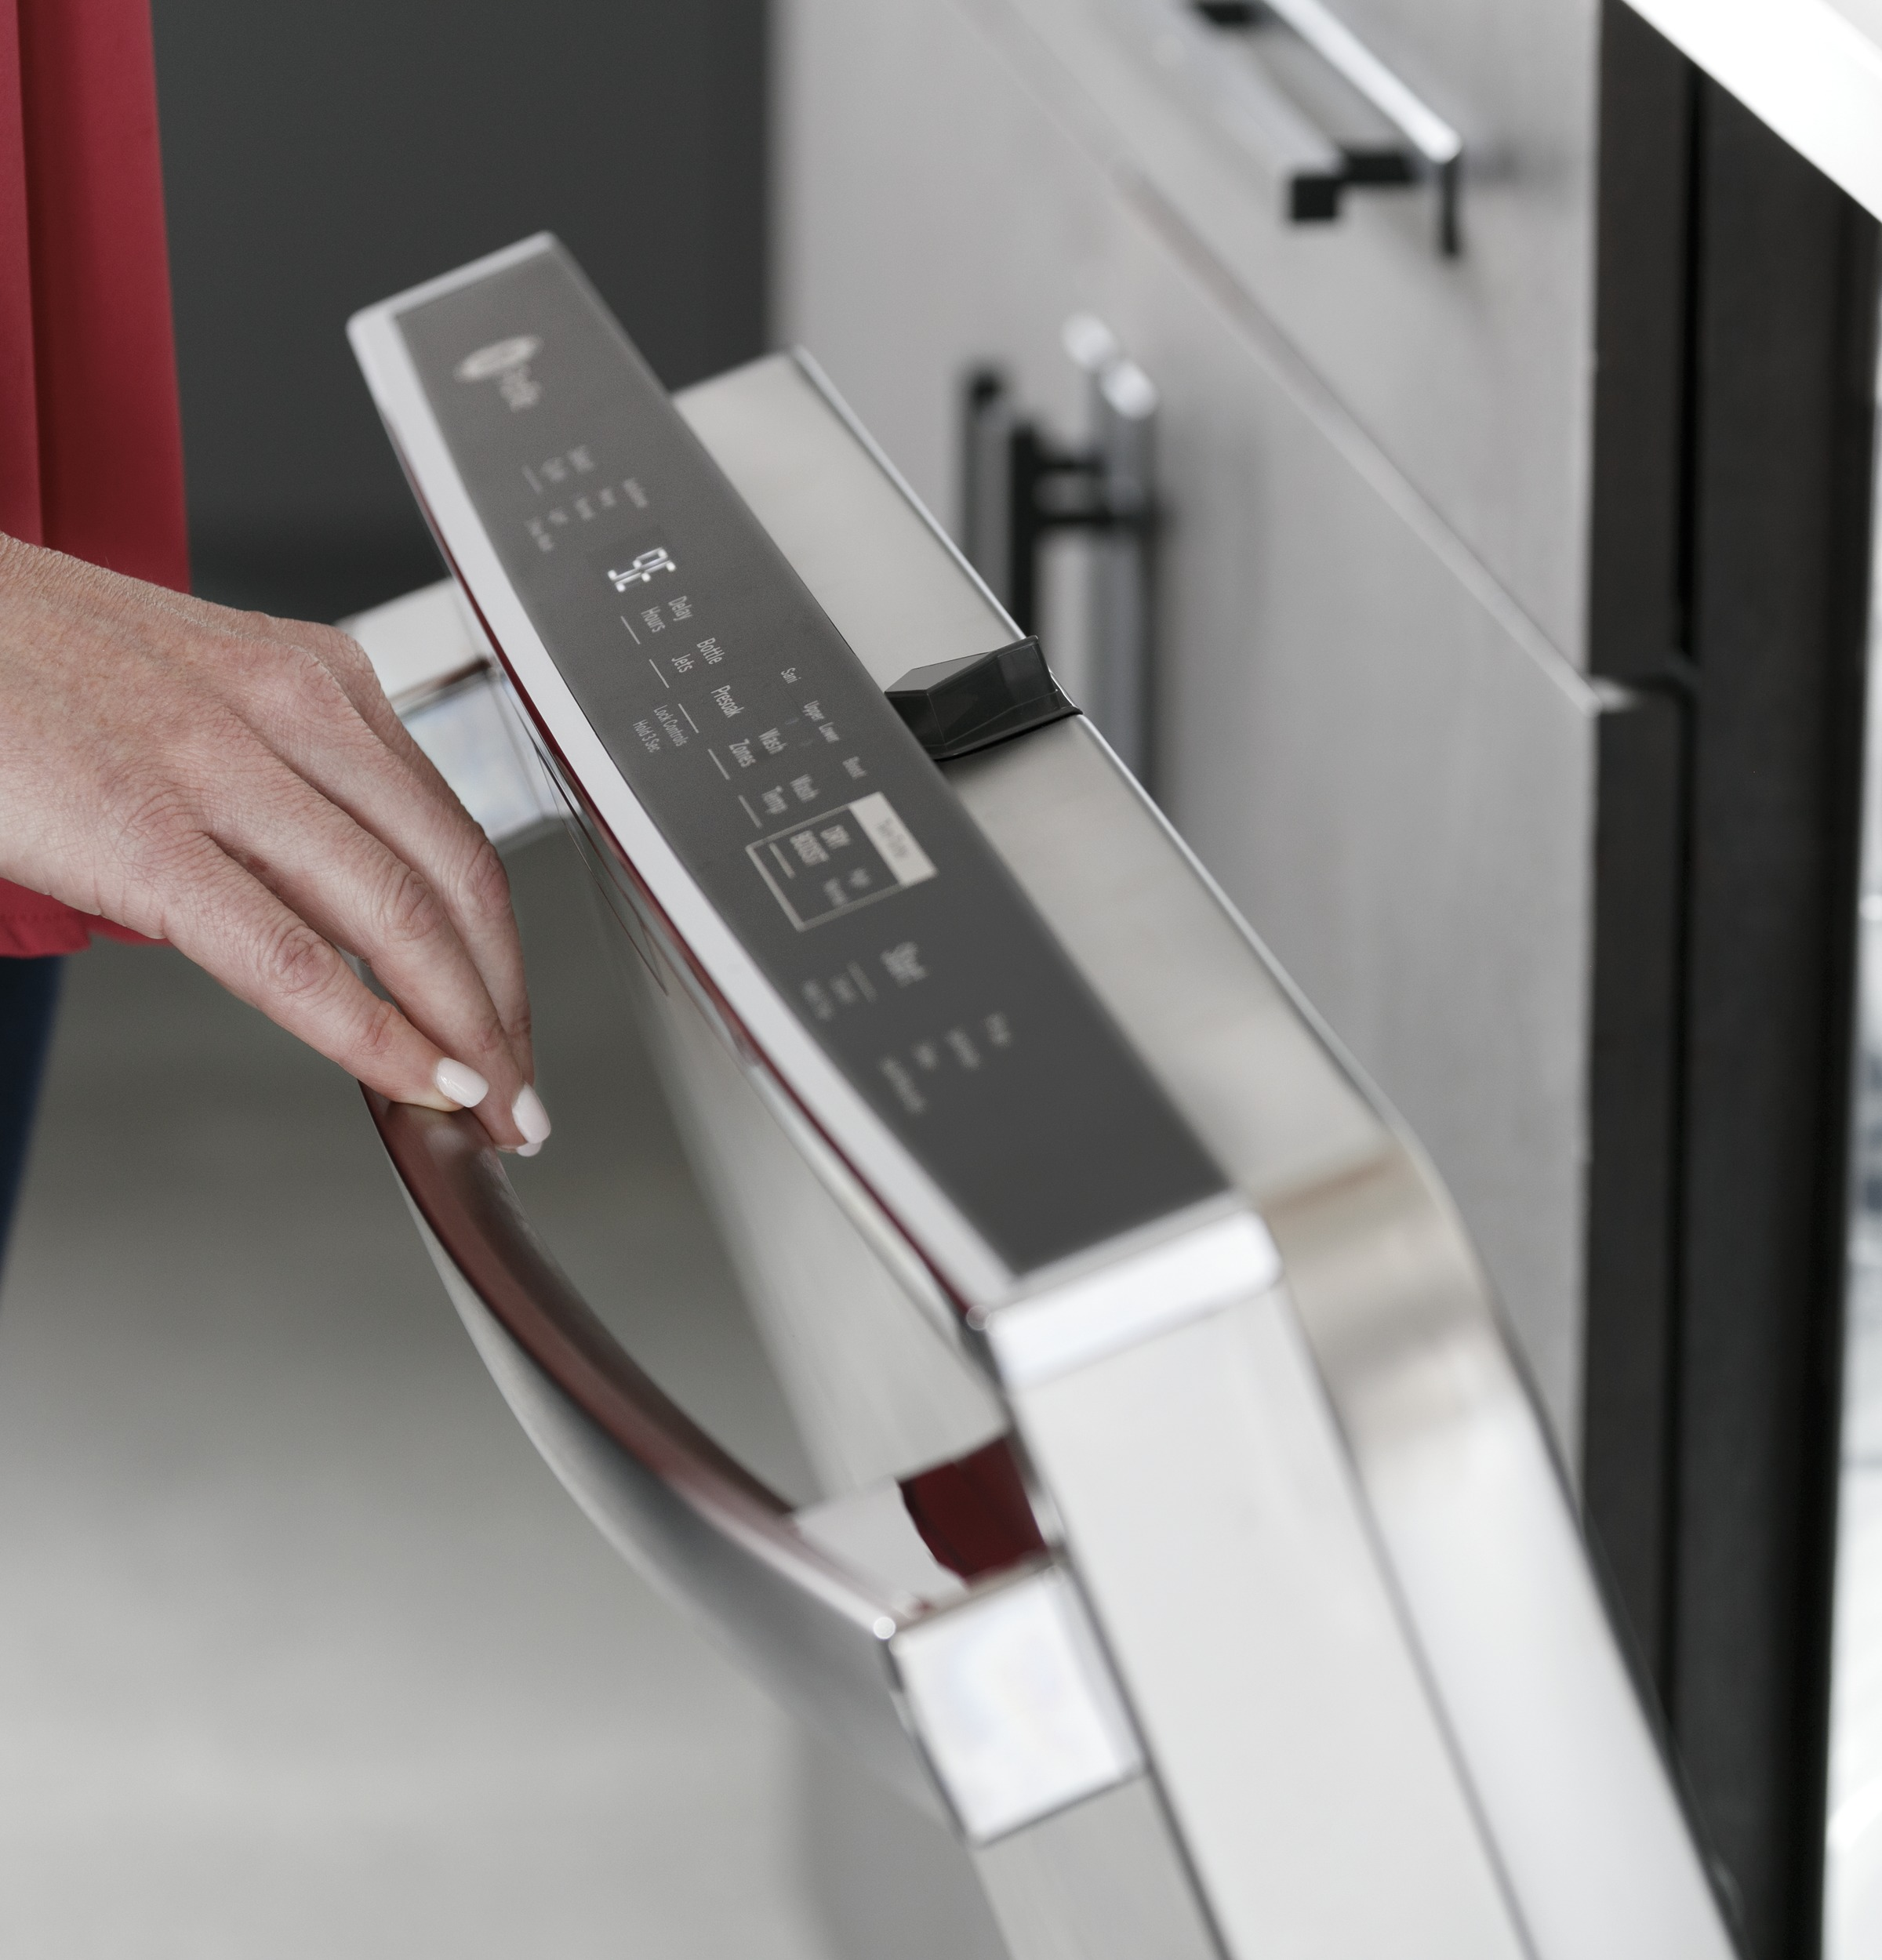 Model: PDT785SBNTS | GE Profile GE Profile™ Top Control with Stainless Steel Interior Dishwasher with Sanitize Cycle & Twin Turbo Dry Boost